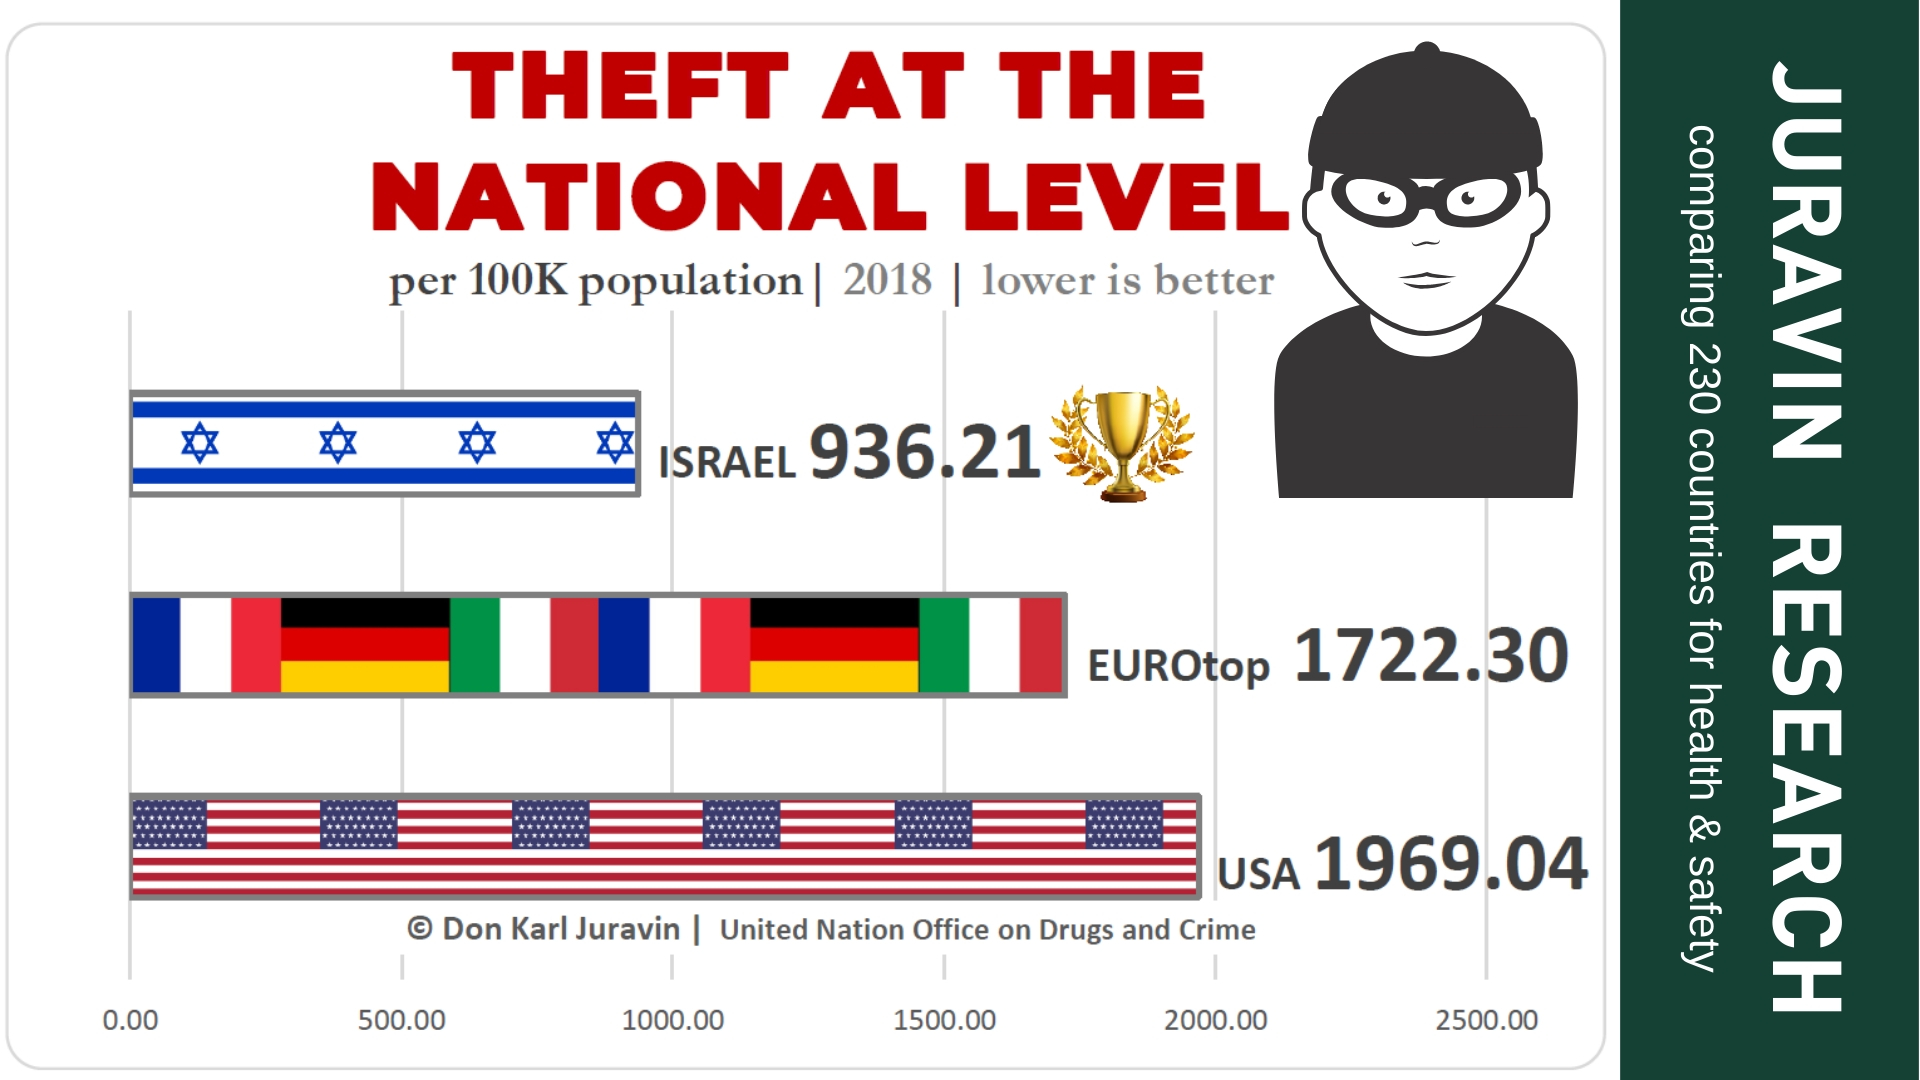 WHAT ARE YOUR CHANCES TO BE ROBBED IN EUROPE, USA OR ISRAEL? DON JURAVIN COMPARED